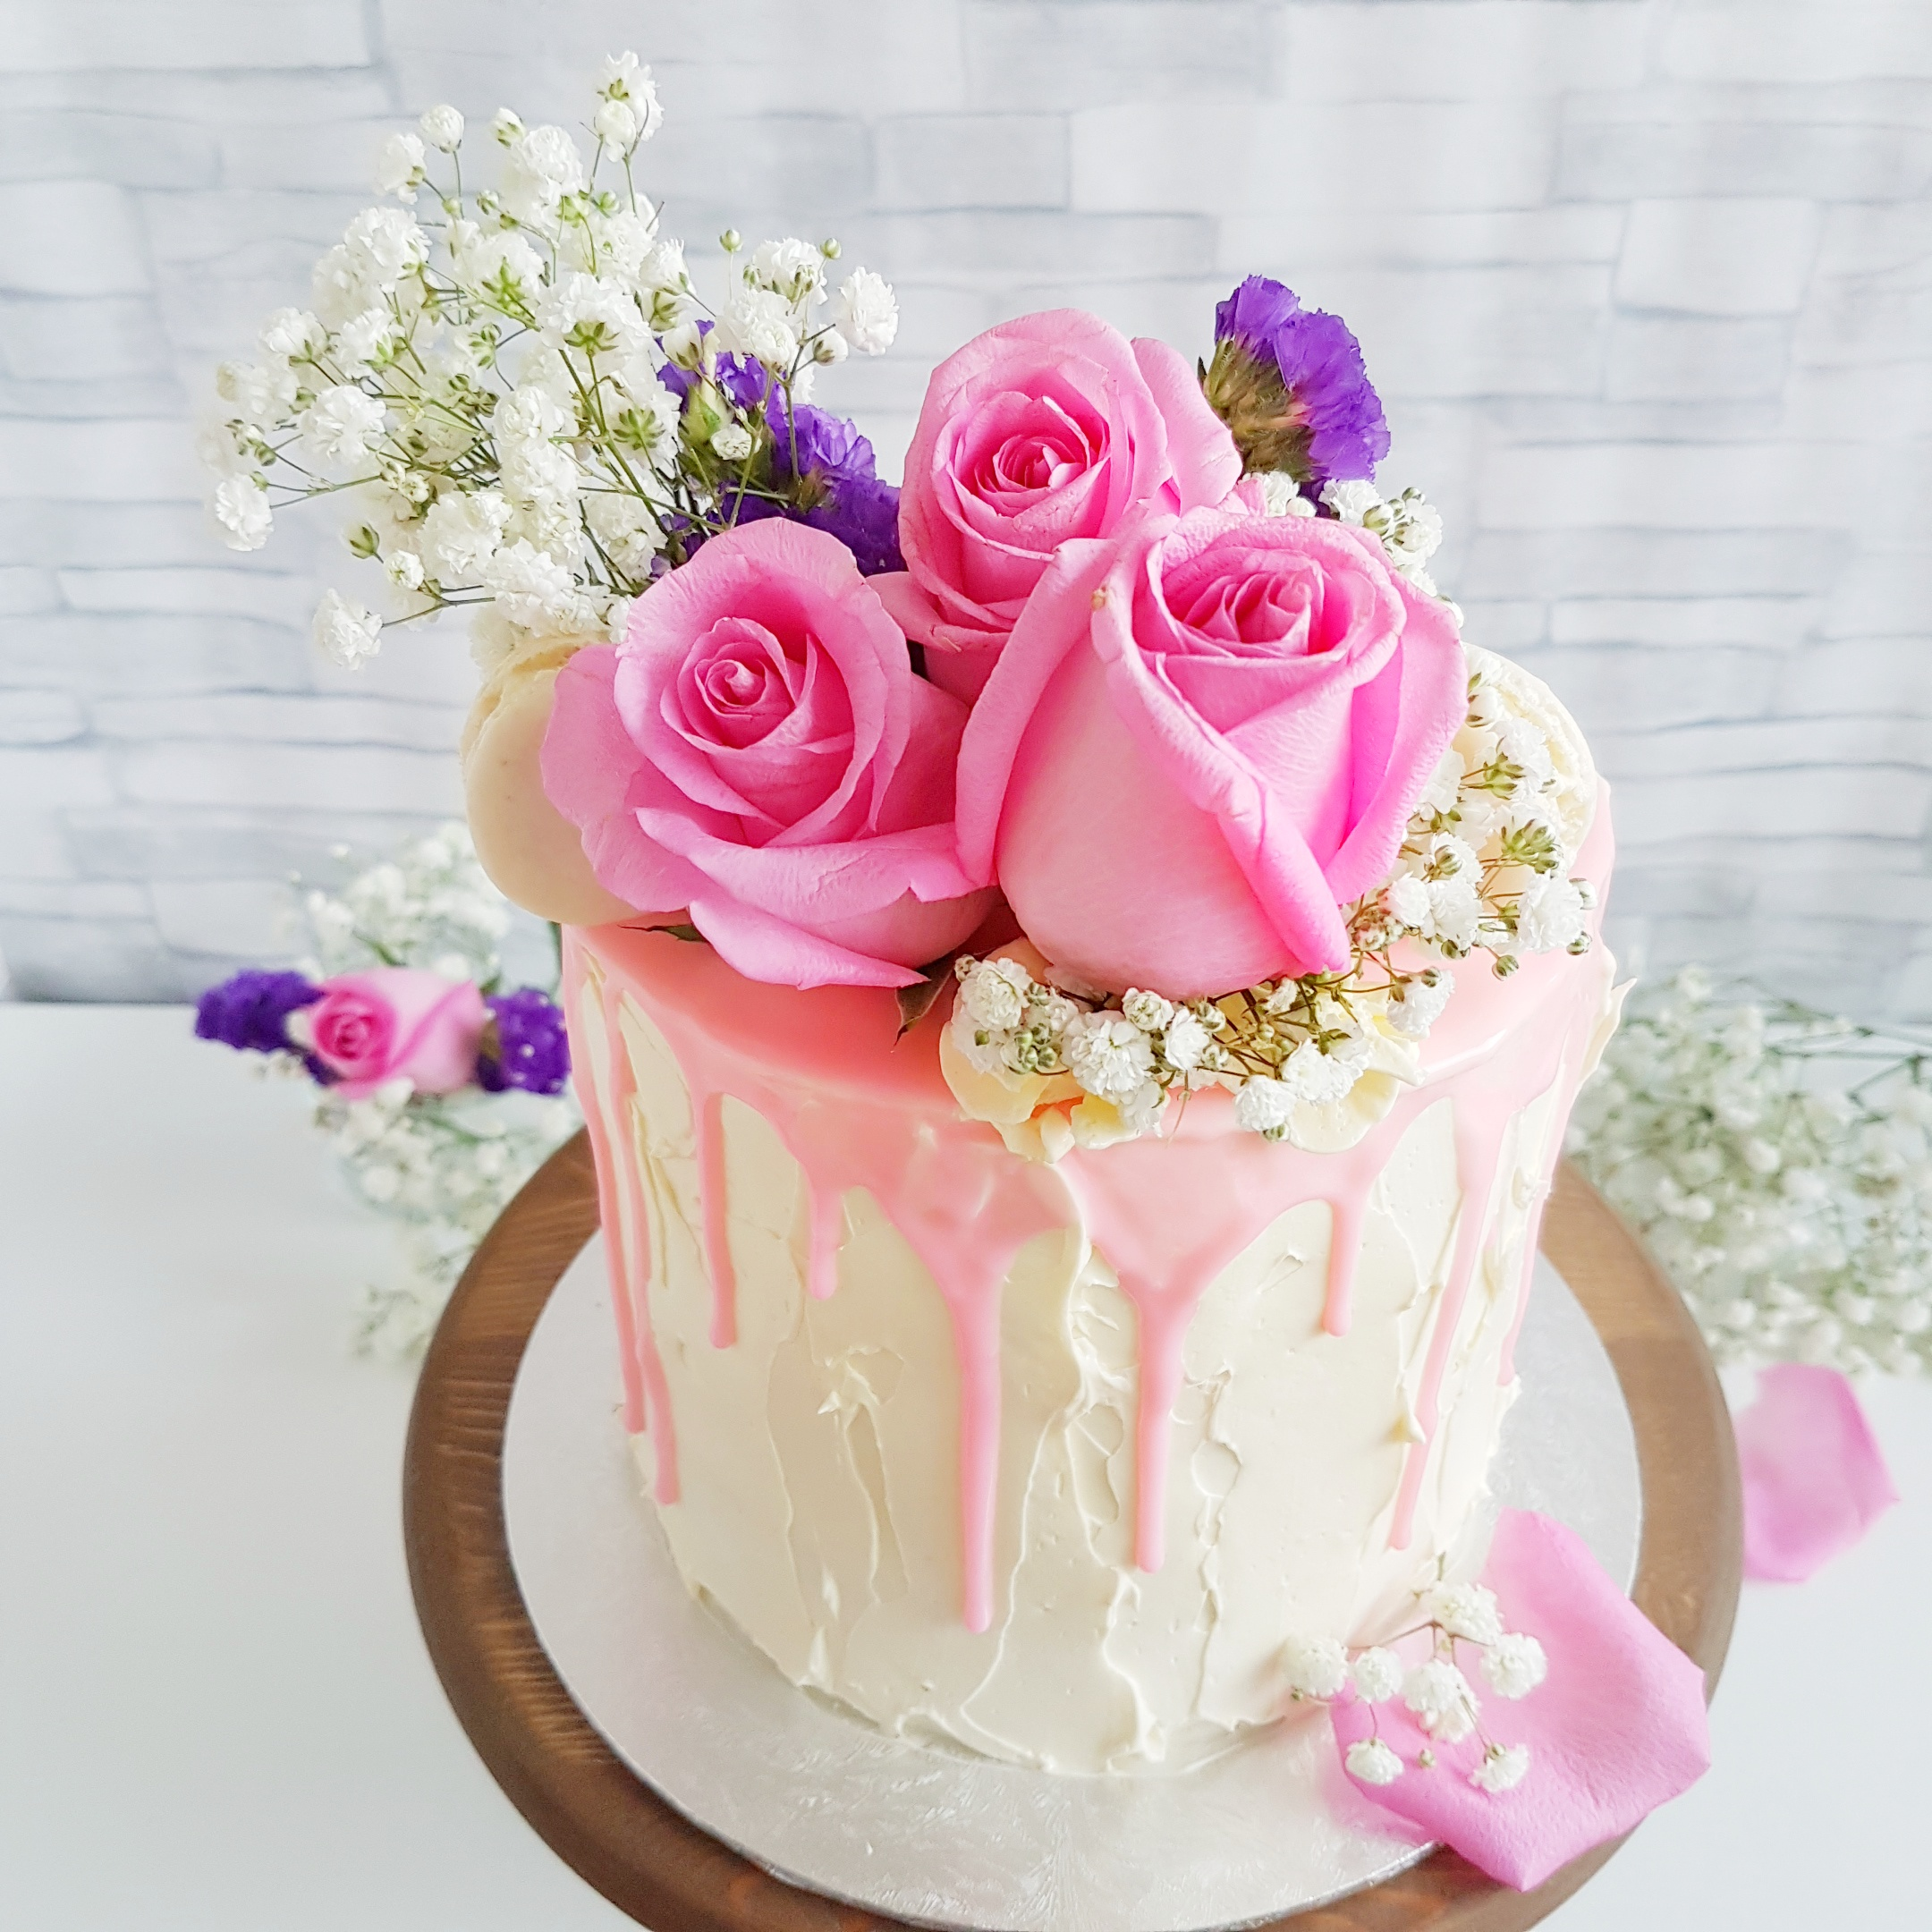 The Baking Experiment Floral Rustic Cake